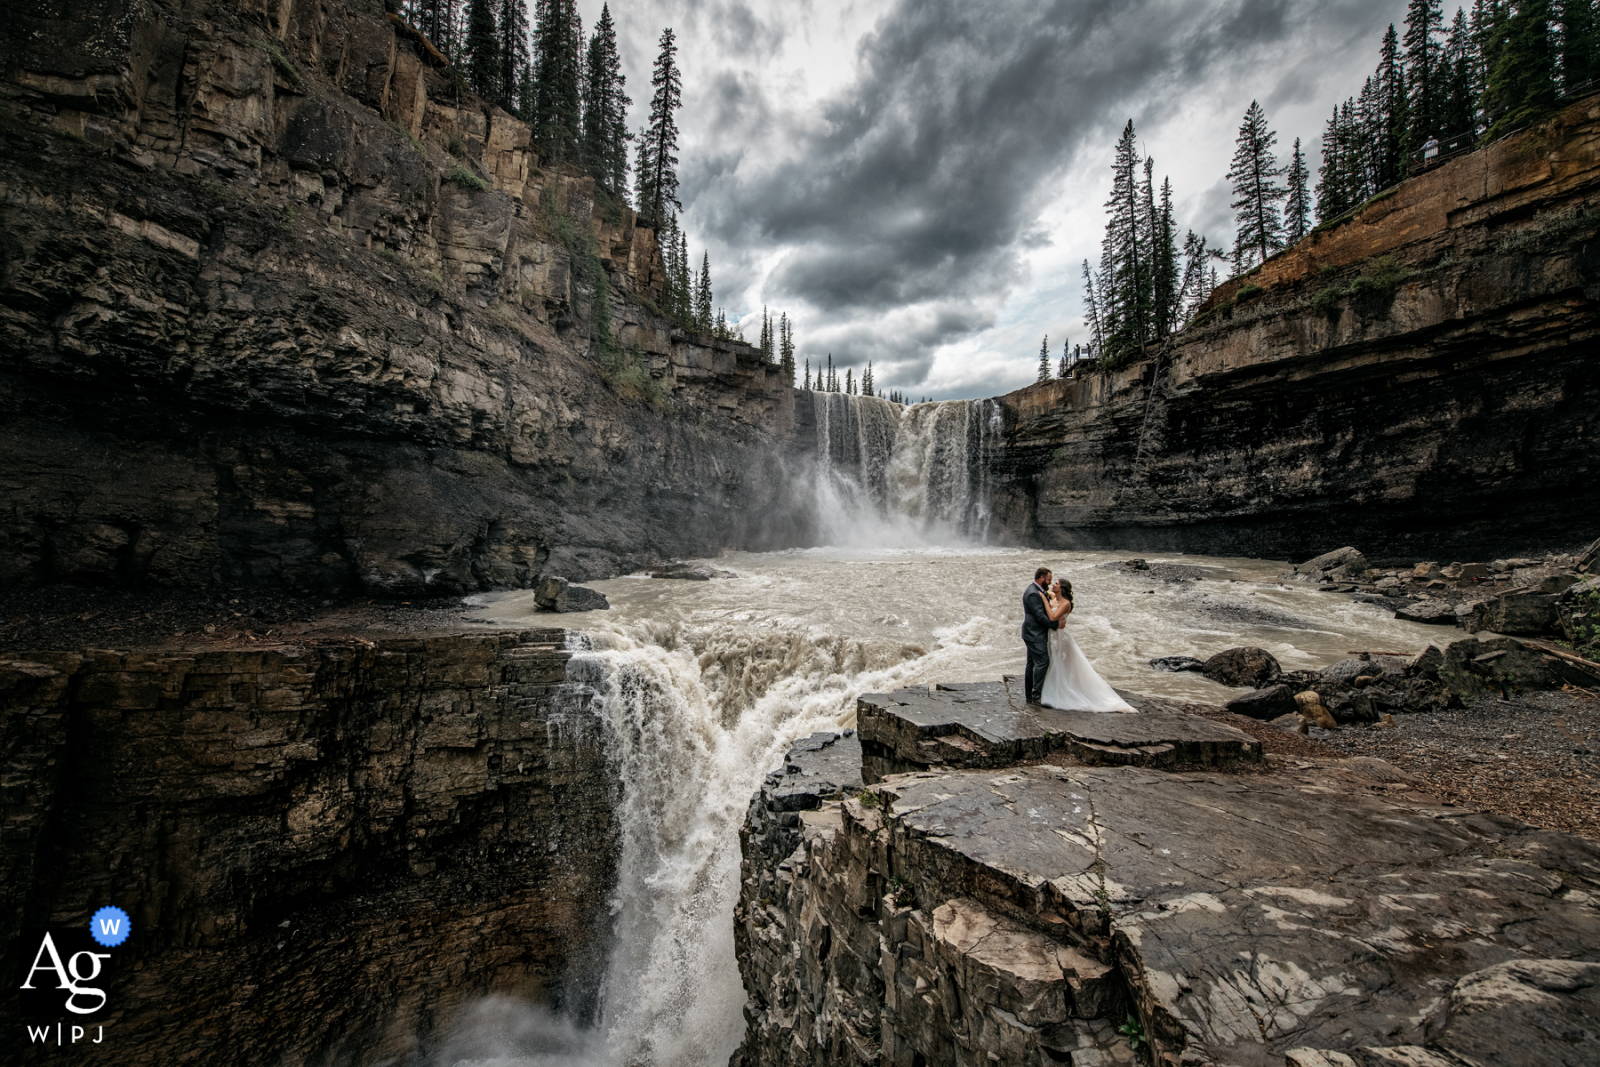 Artistic wedding photography at Crescent Falls, AB, Canada with a Hug at the waterfalls